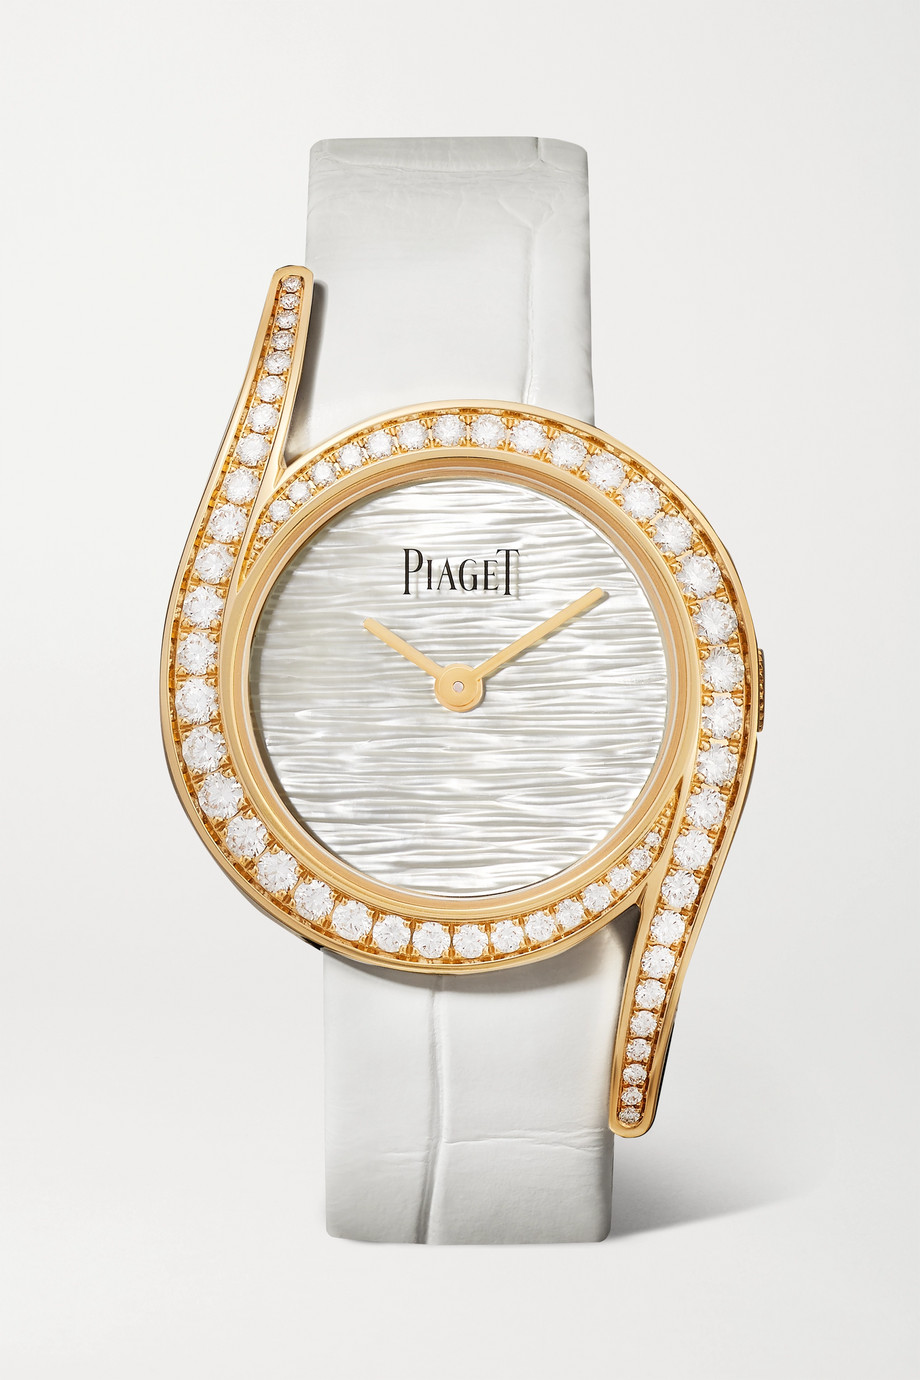 Piaget Montre en or rose 18 carats, nacre et diamants à bracelet en alligator Limelight Gala Limited Edition 32 mm